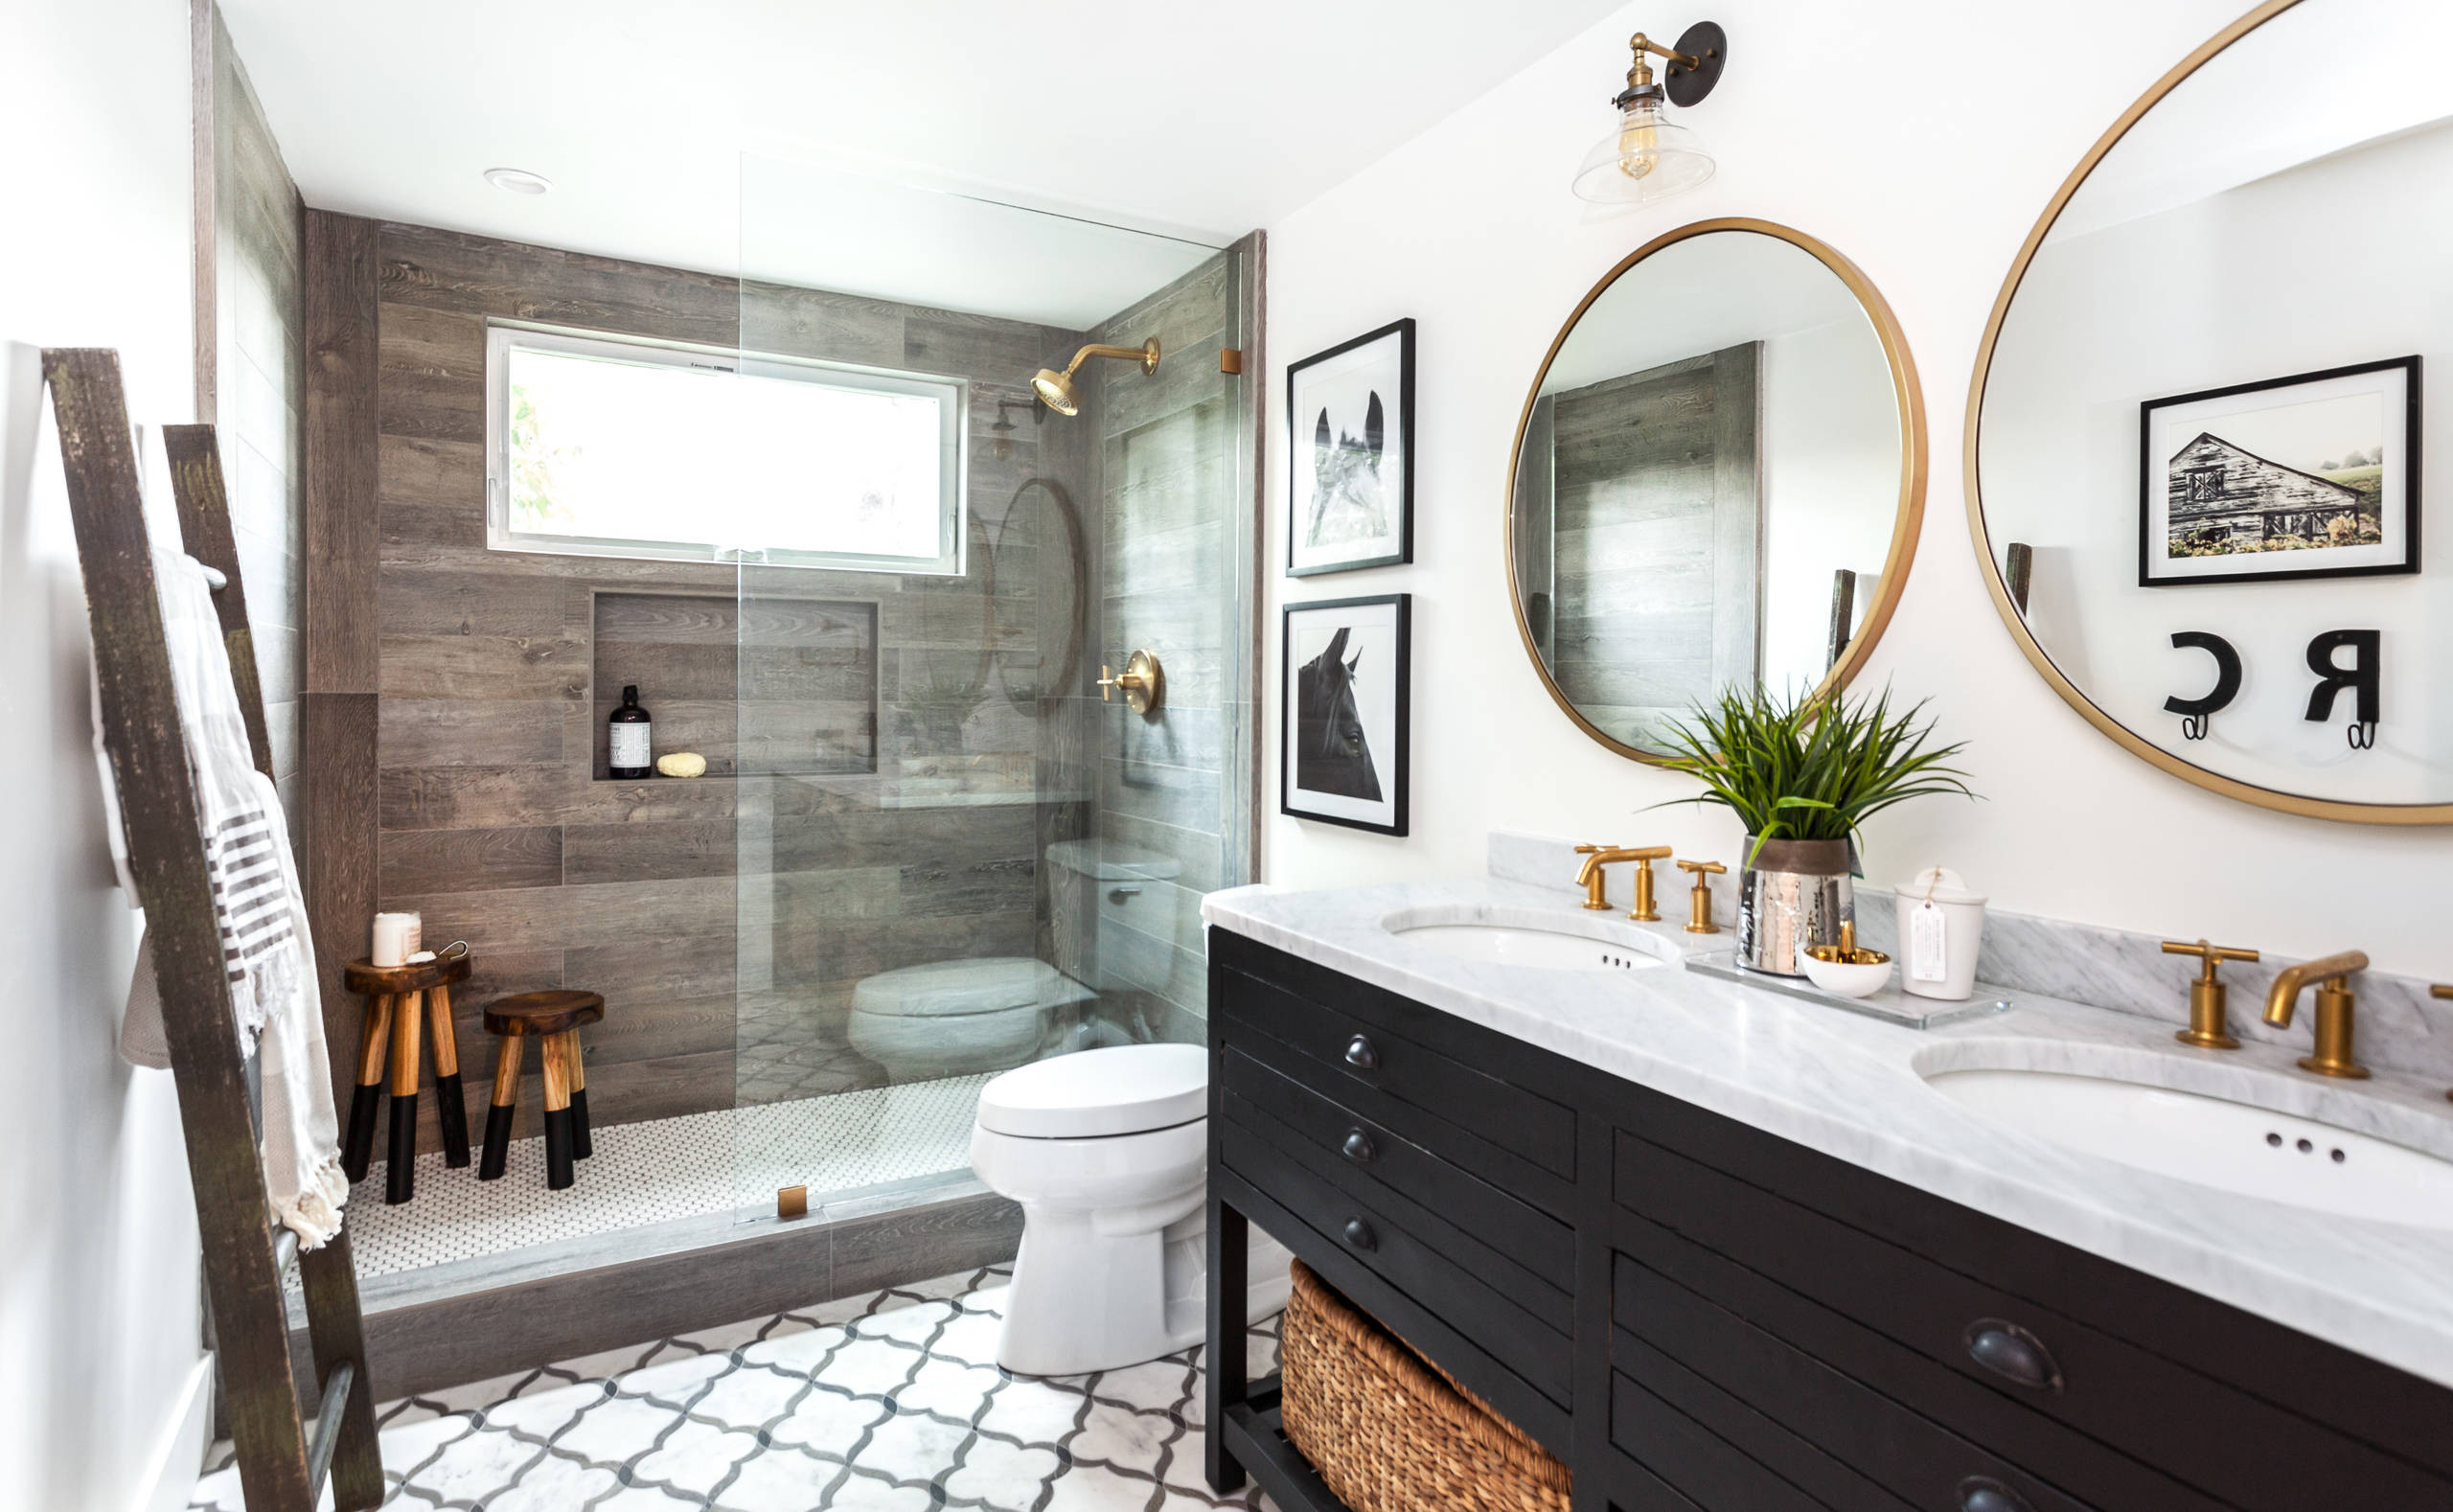 Bathroom Remodel Ideas 2020  2020 Tips and Tricks for Your Best Bathroom Remodel Yet